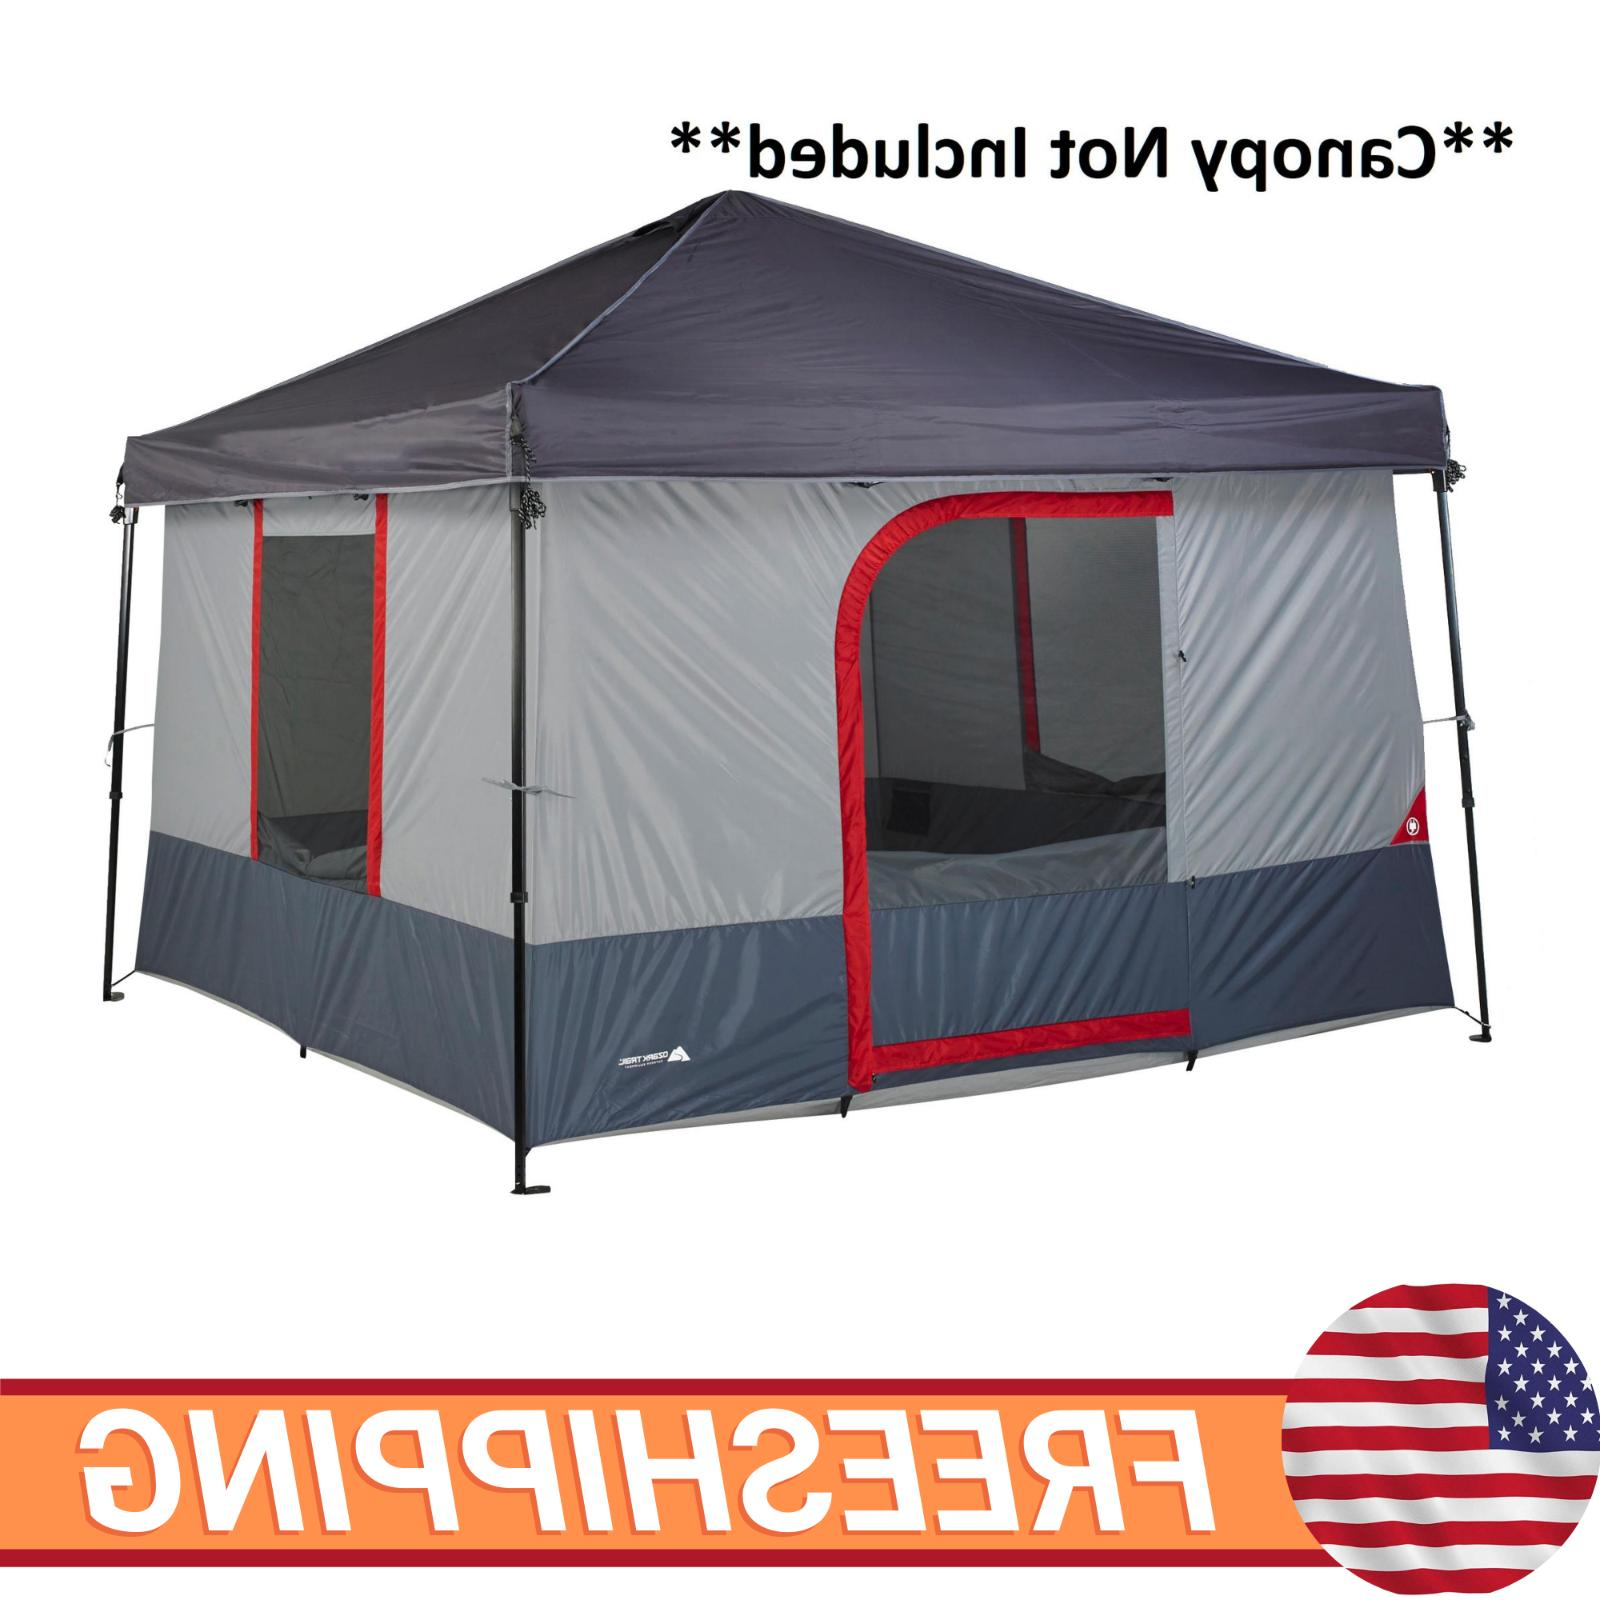 6 person 10 x 10 ft connect